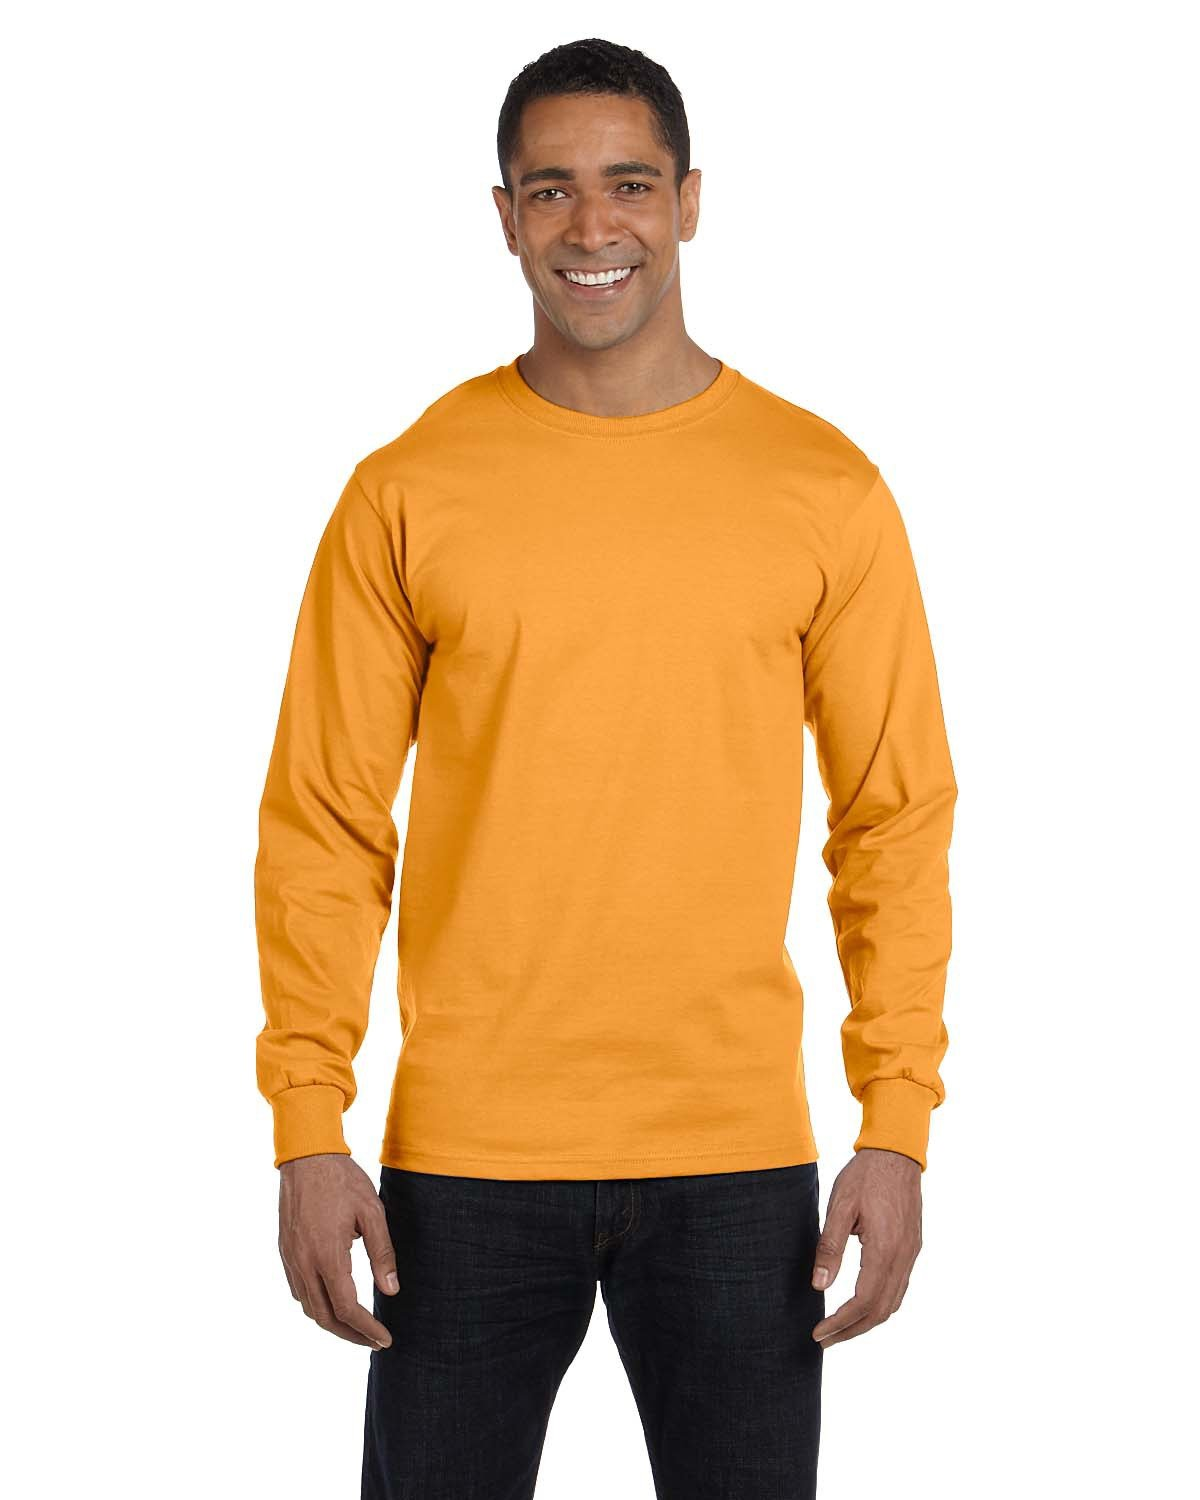 Hanes Adult Long-Sleeve Beefy-T® GOLD